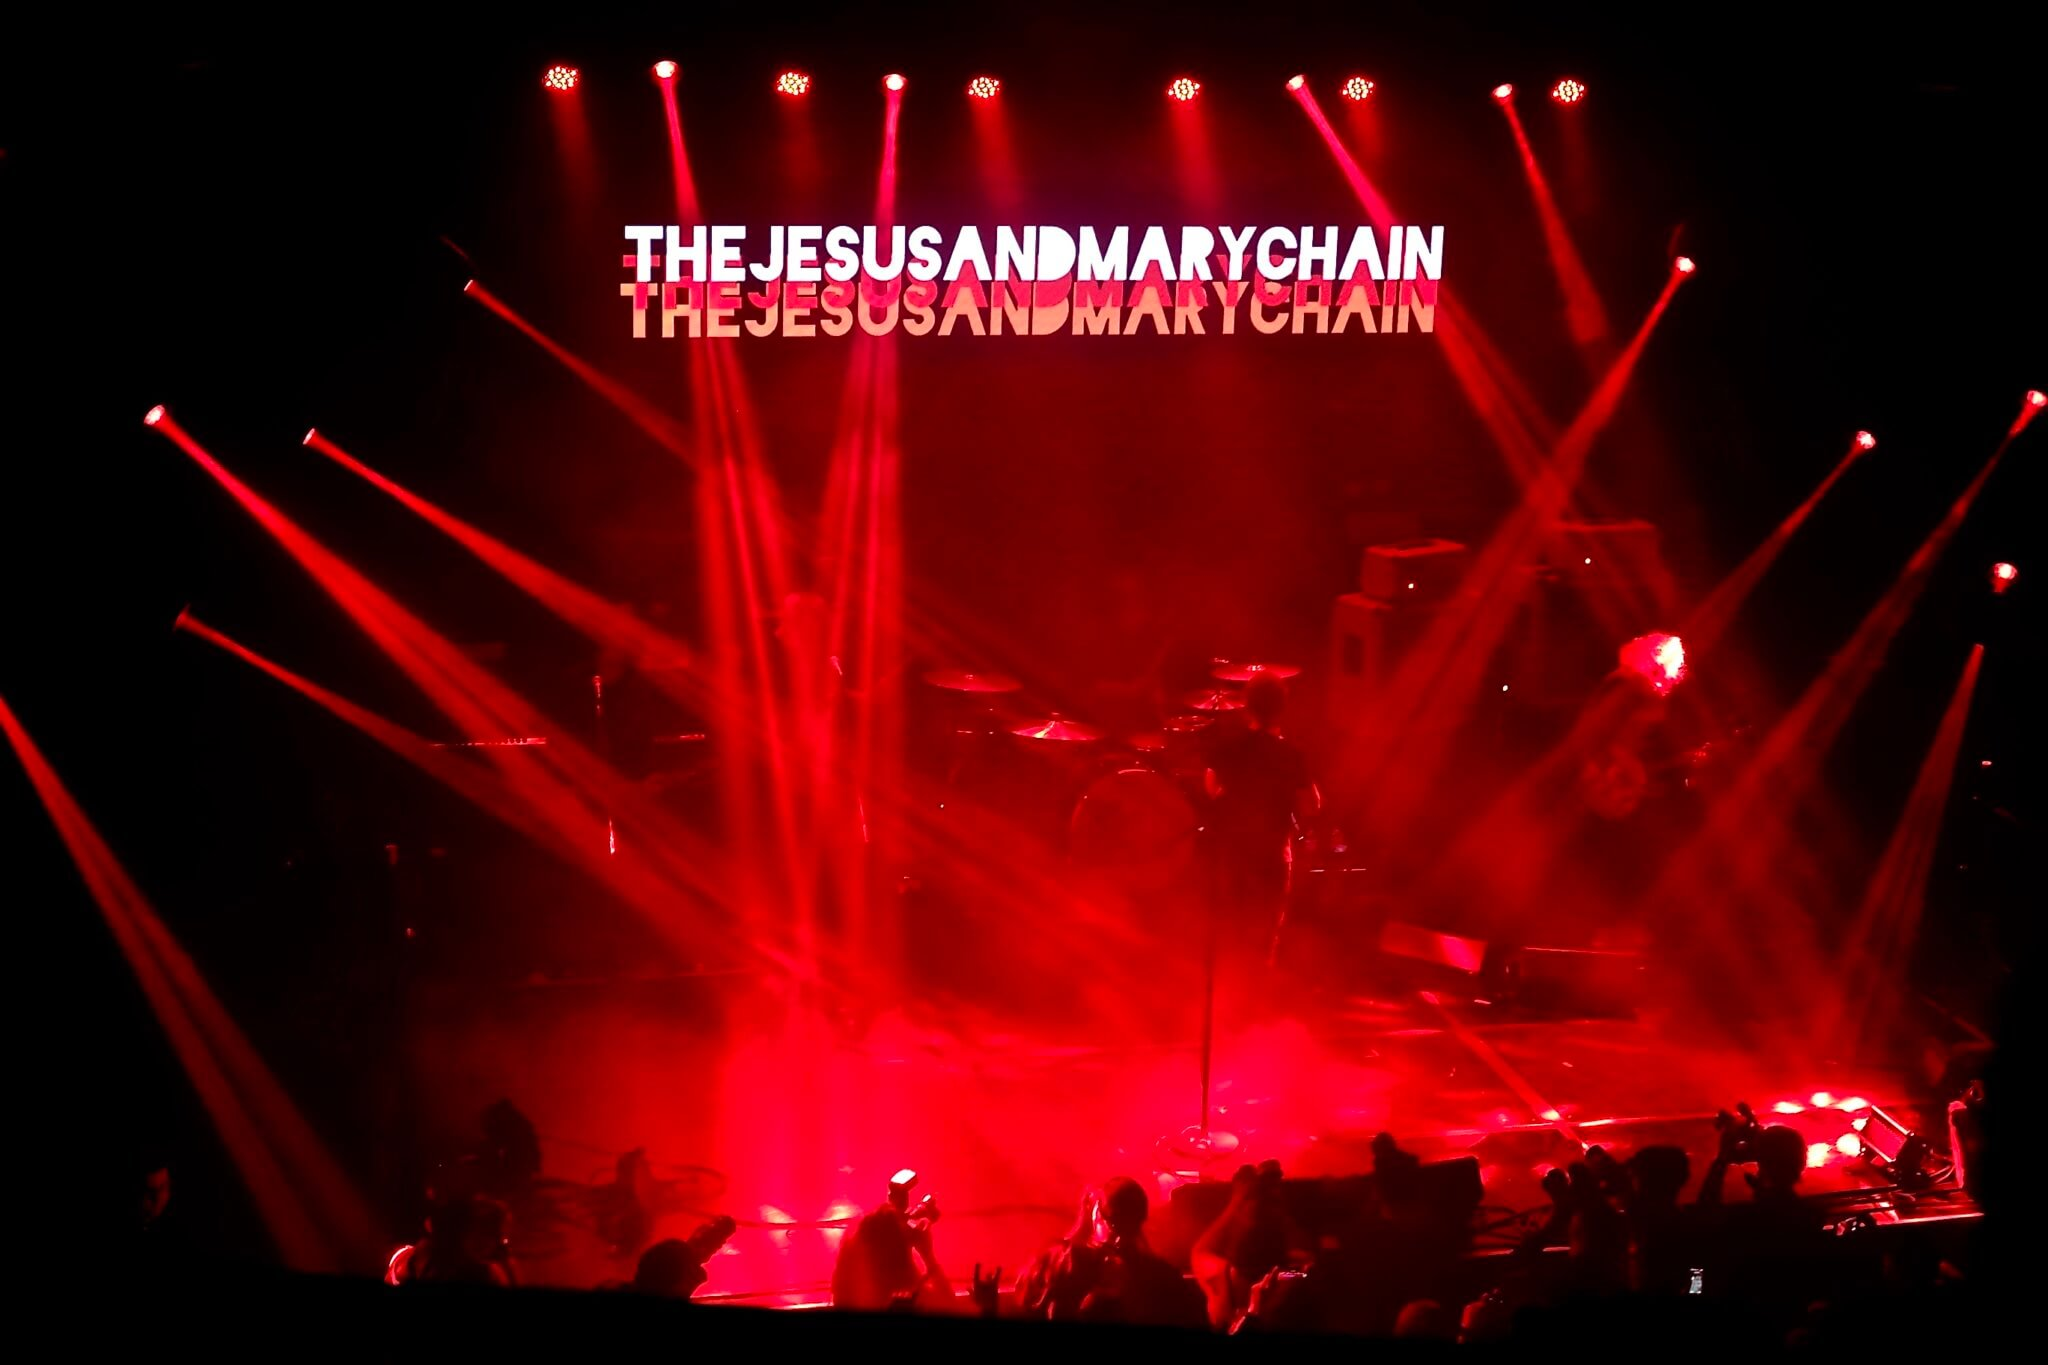 Cloak & Dagger, Night 1: The Jesus & Mary Chain, Com Truise, HEALTH, Drab Majesty, Chasms 1